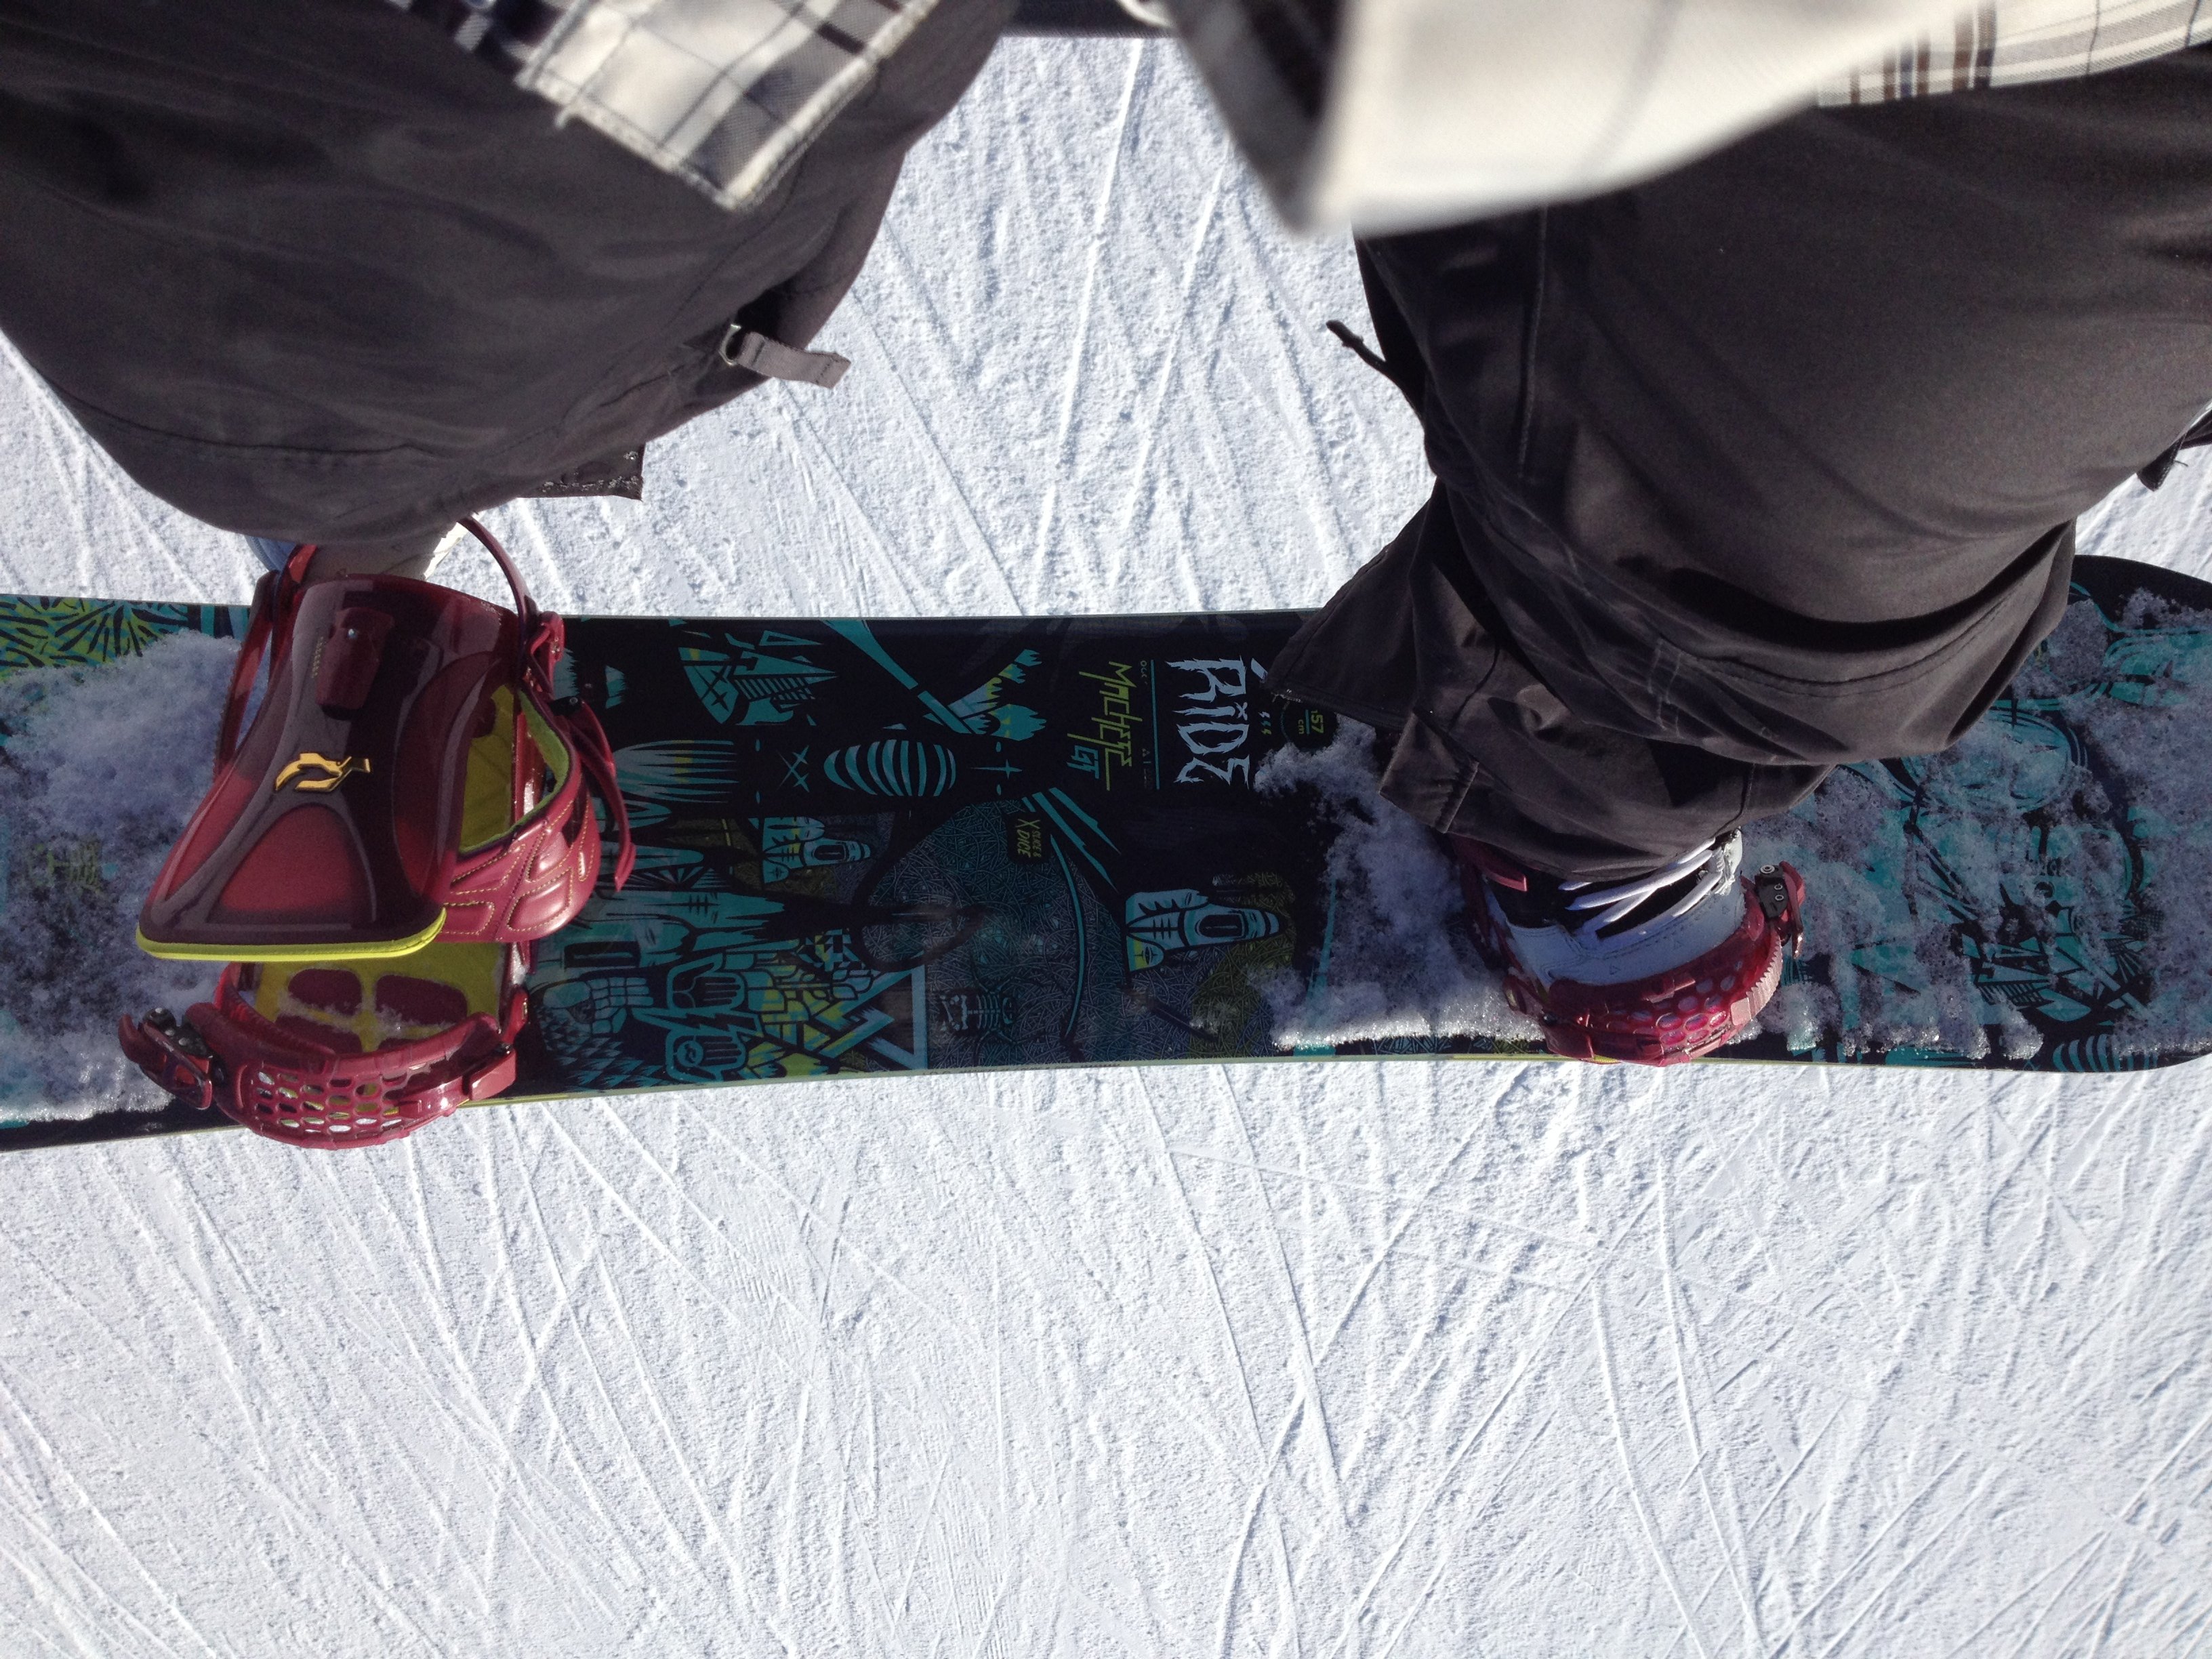 2013 Ride Machete GT snowboard